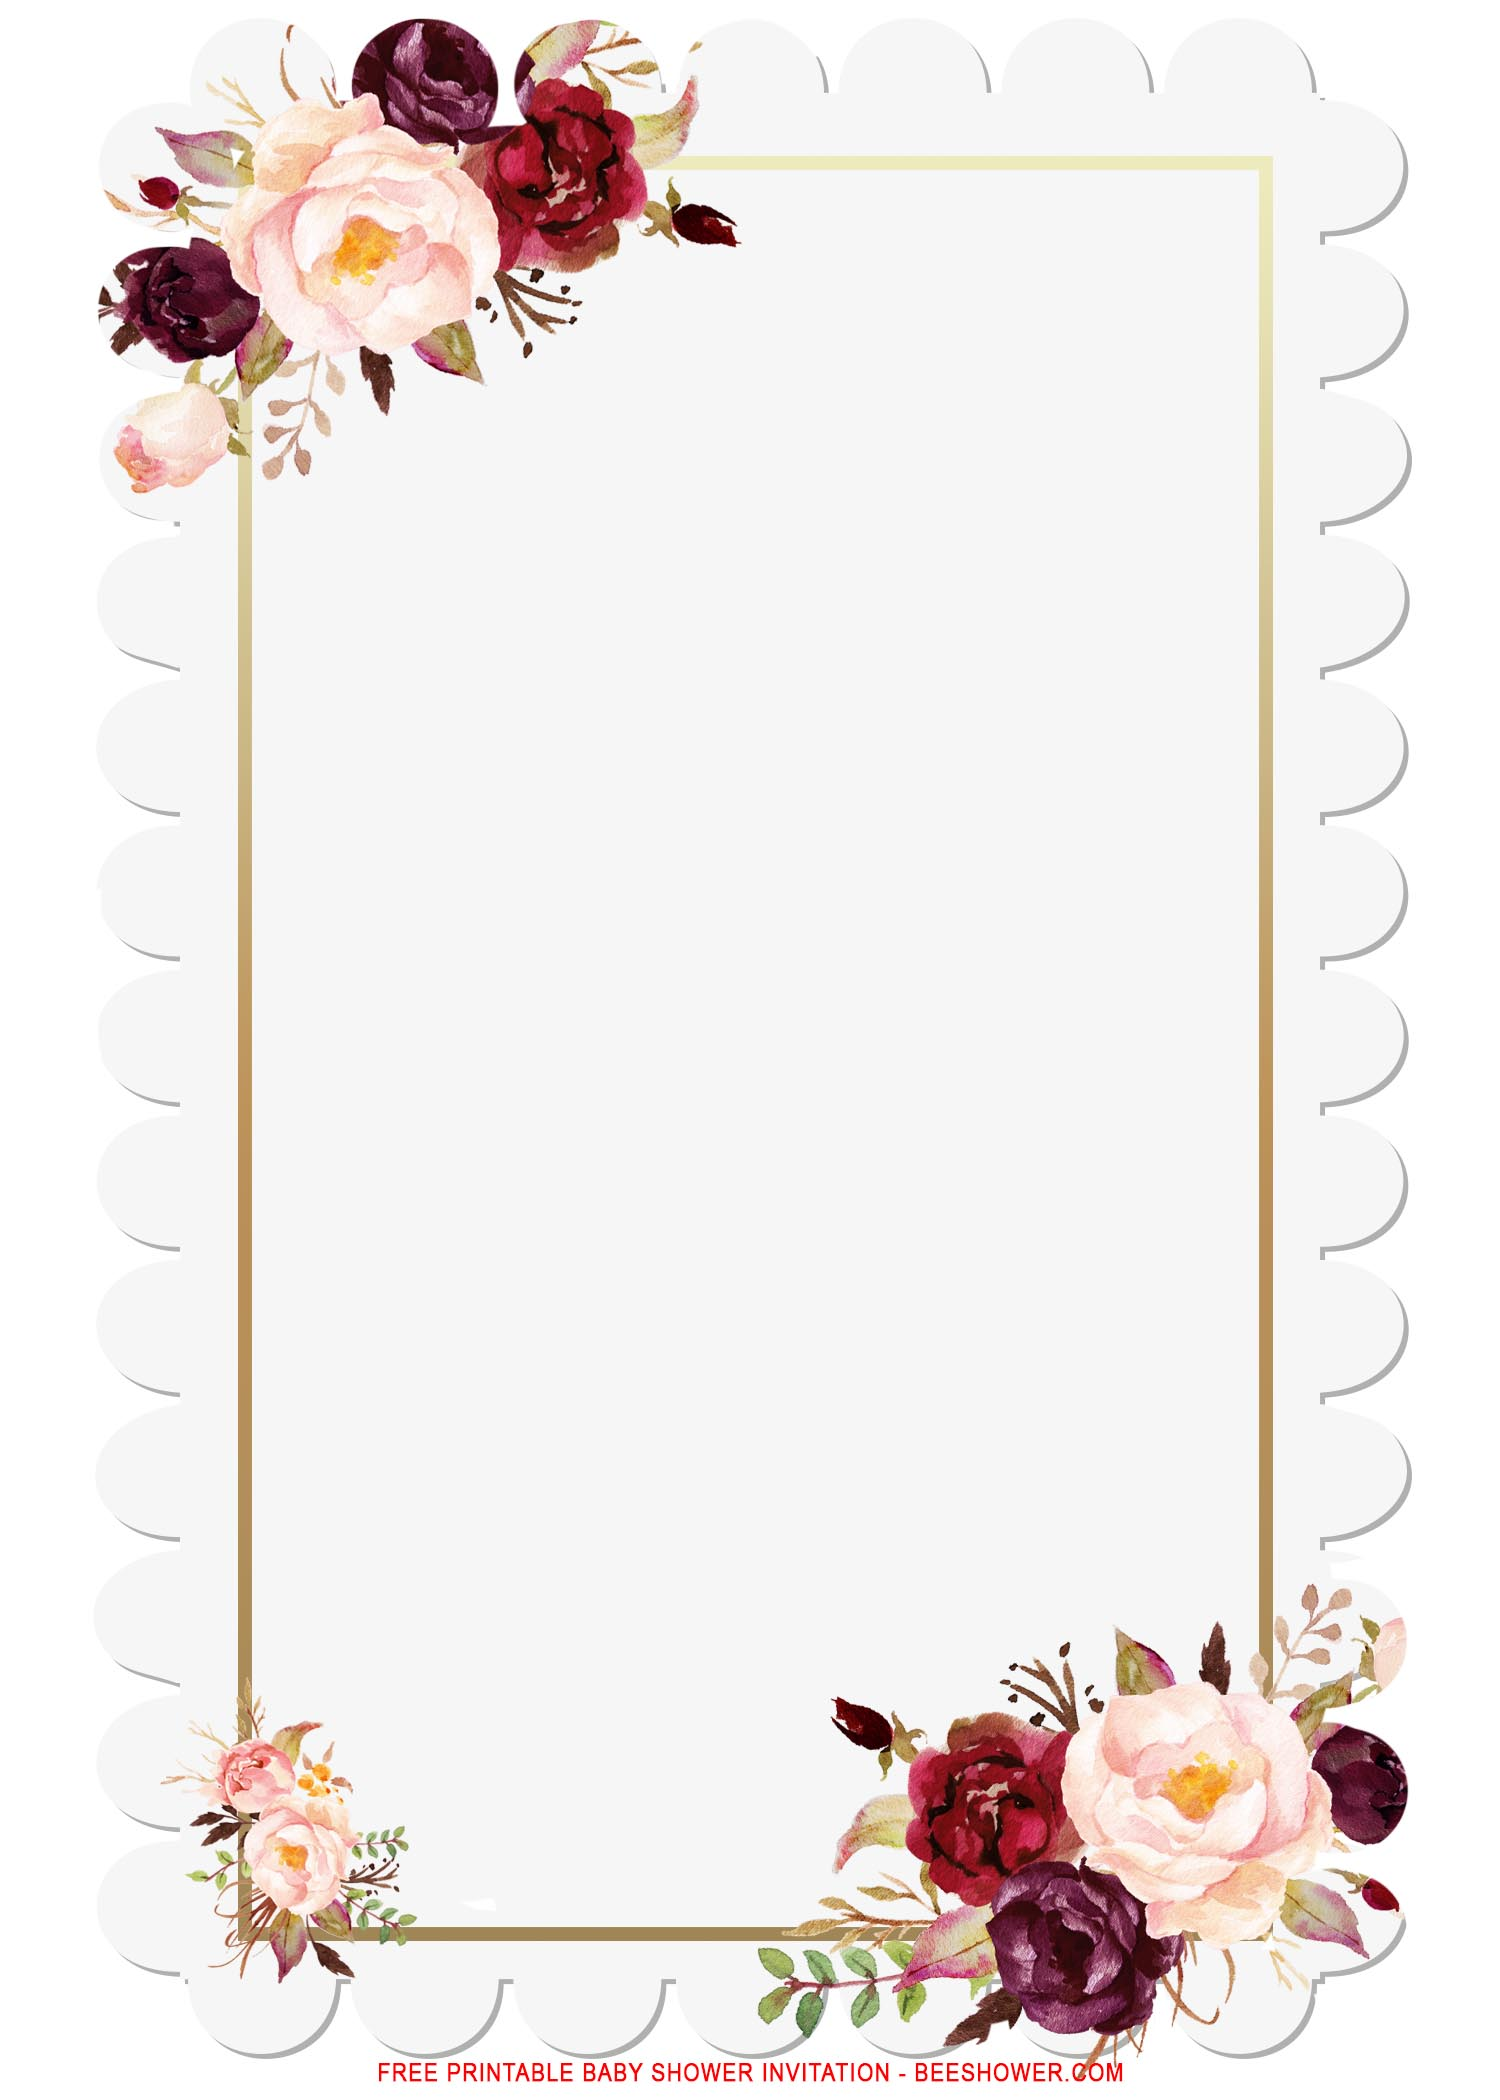 Birthday Frame Template